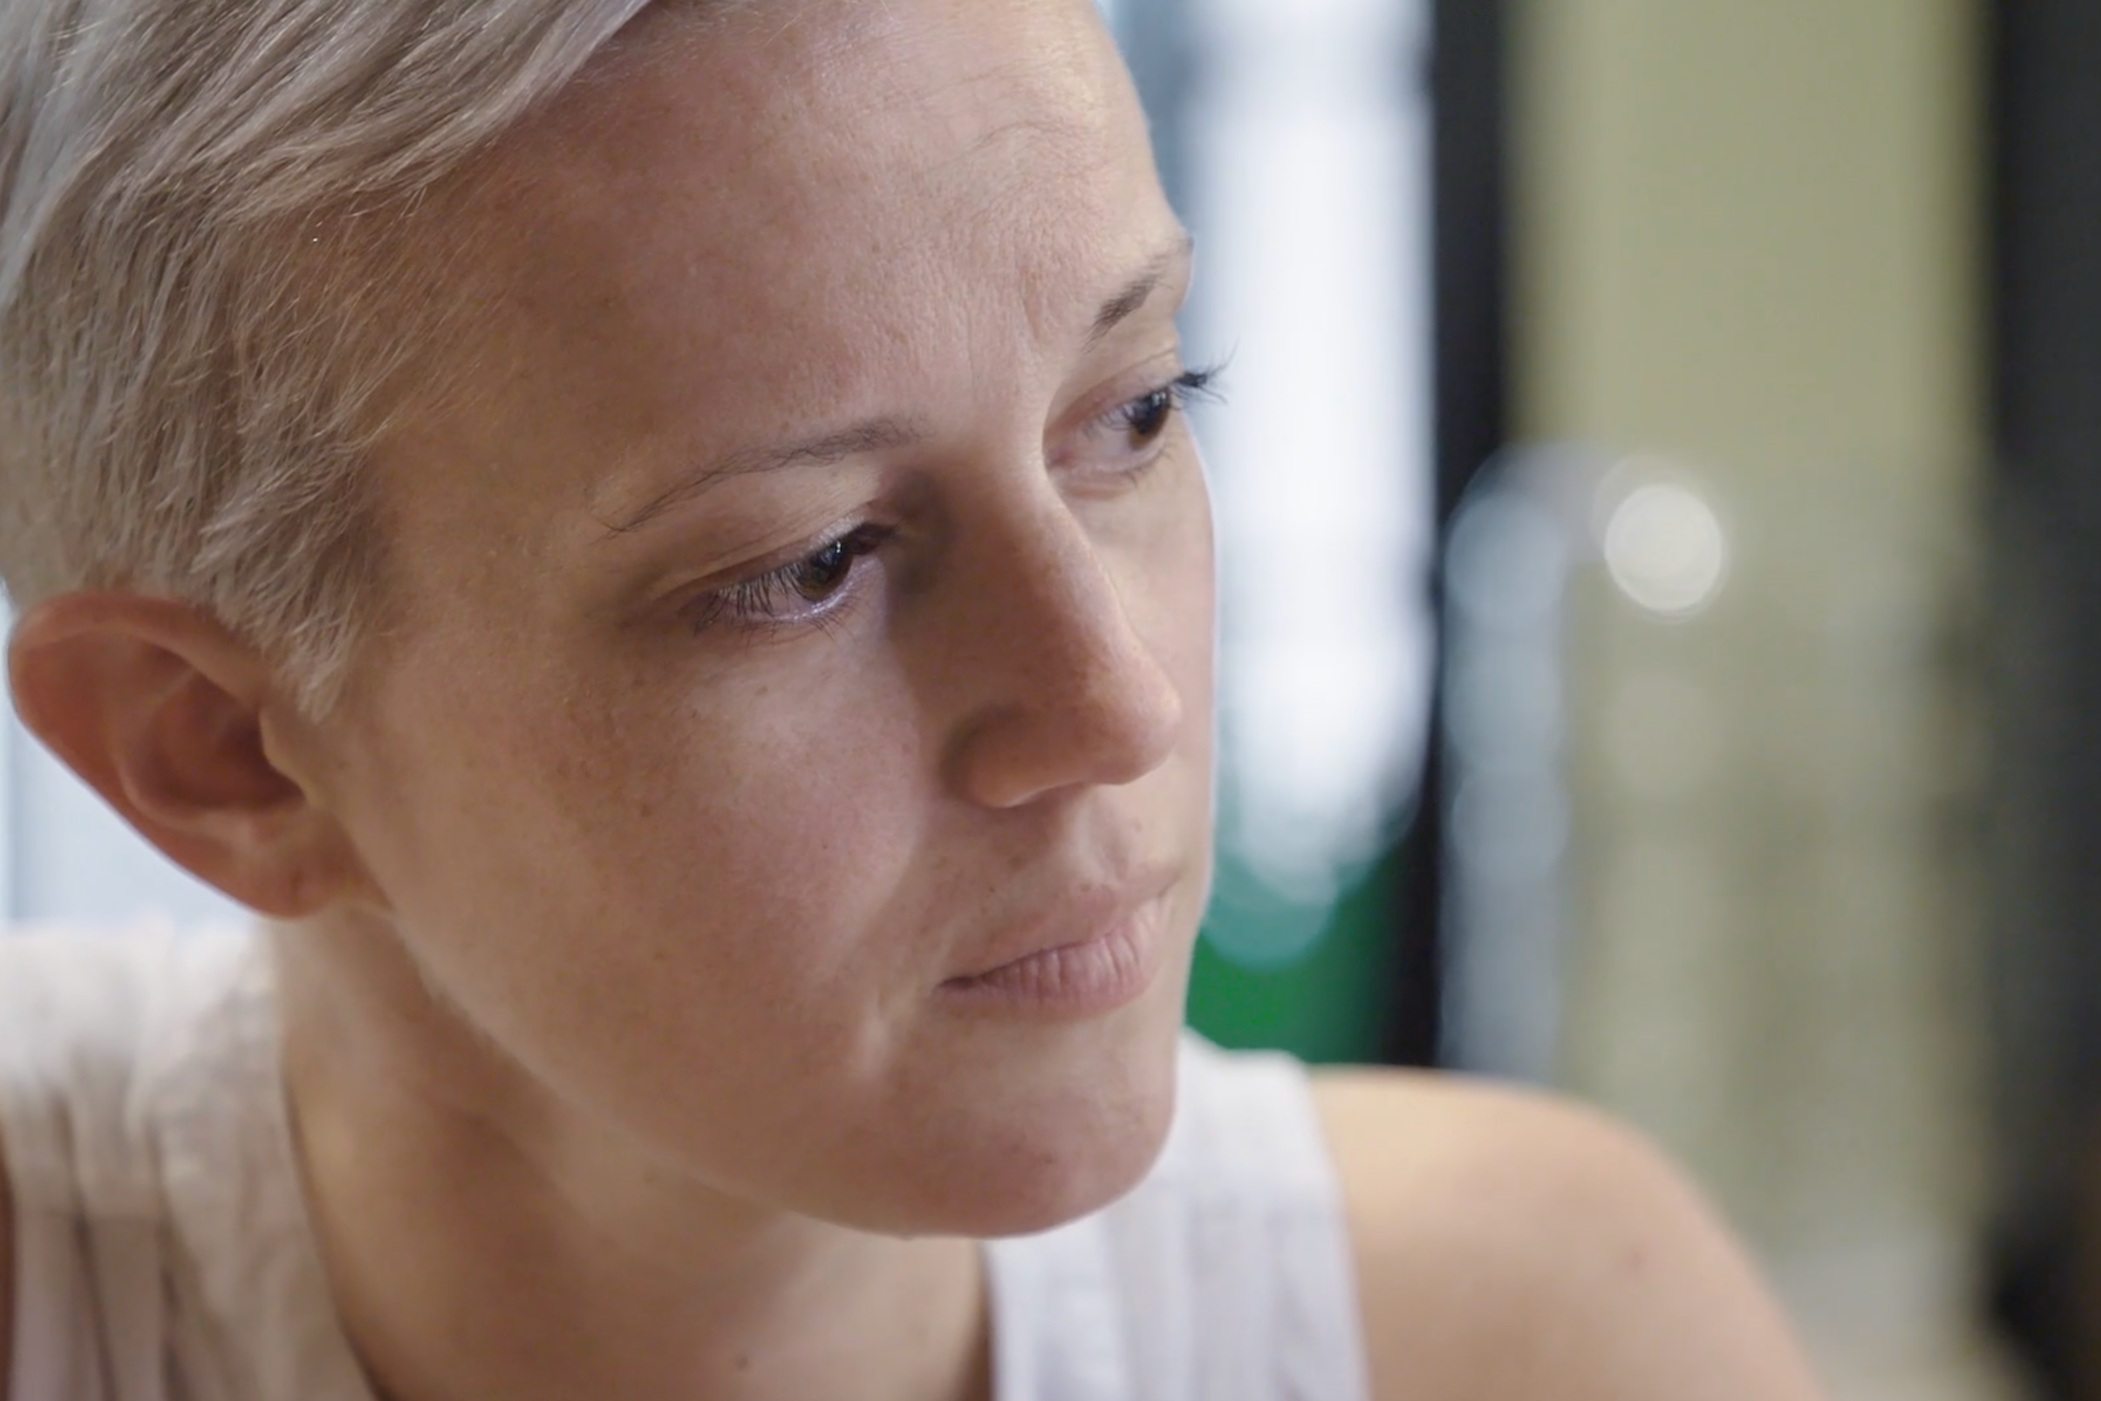 Grace - Captures the journey of a 36-year-old suburban soccer mom and breast cancer survivor who decides to reclaim her body by covering her mastectomy scars with an elaborate tattoo. Directed by a recent breast cancer survivor and created by an all-female crew.Run time: 16 minutesDirector: Rachel Pikelny